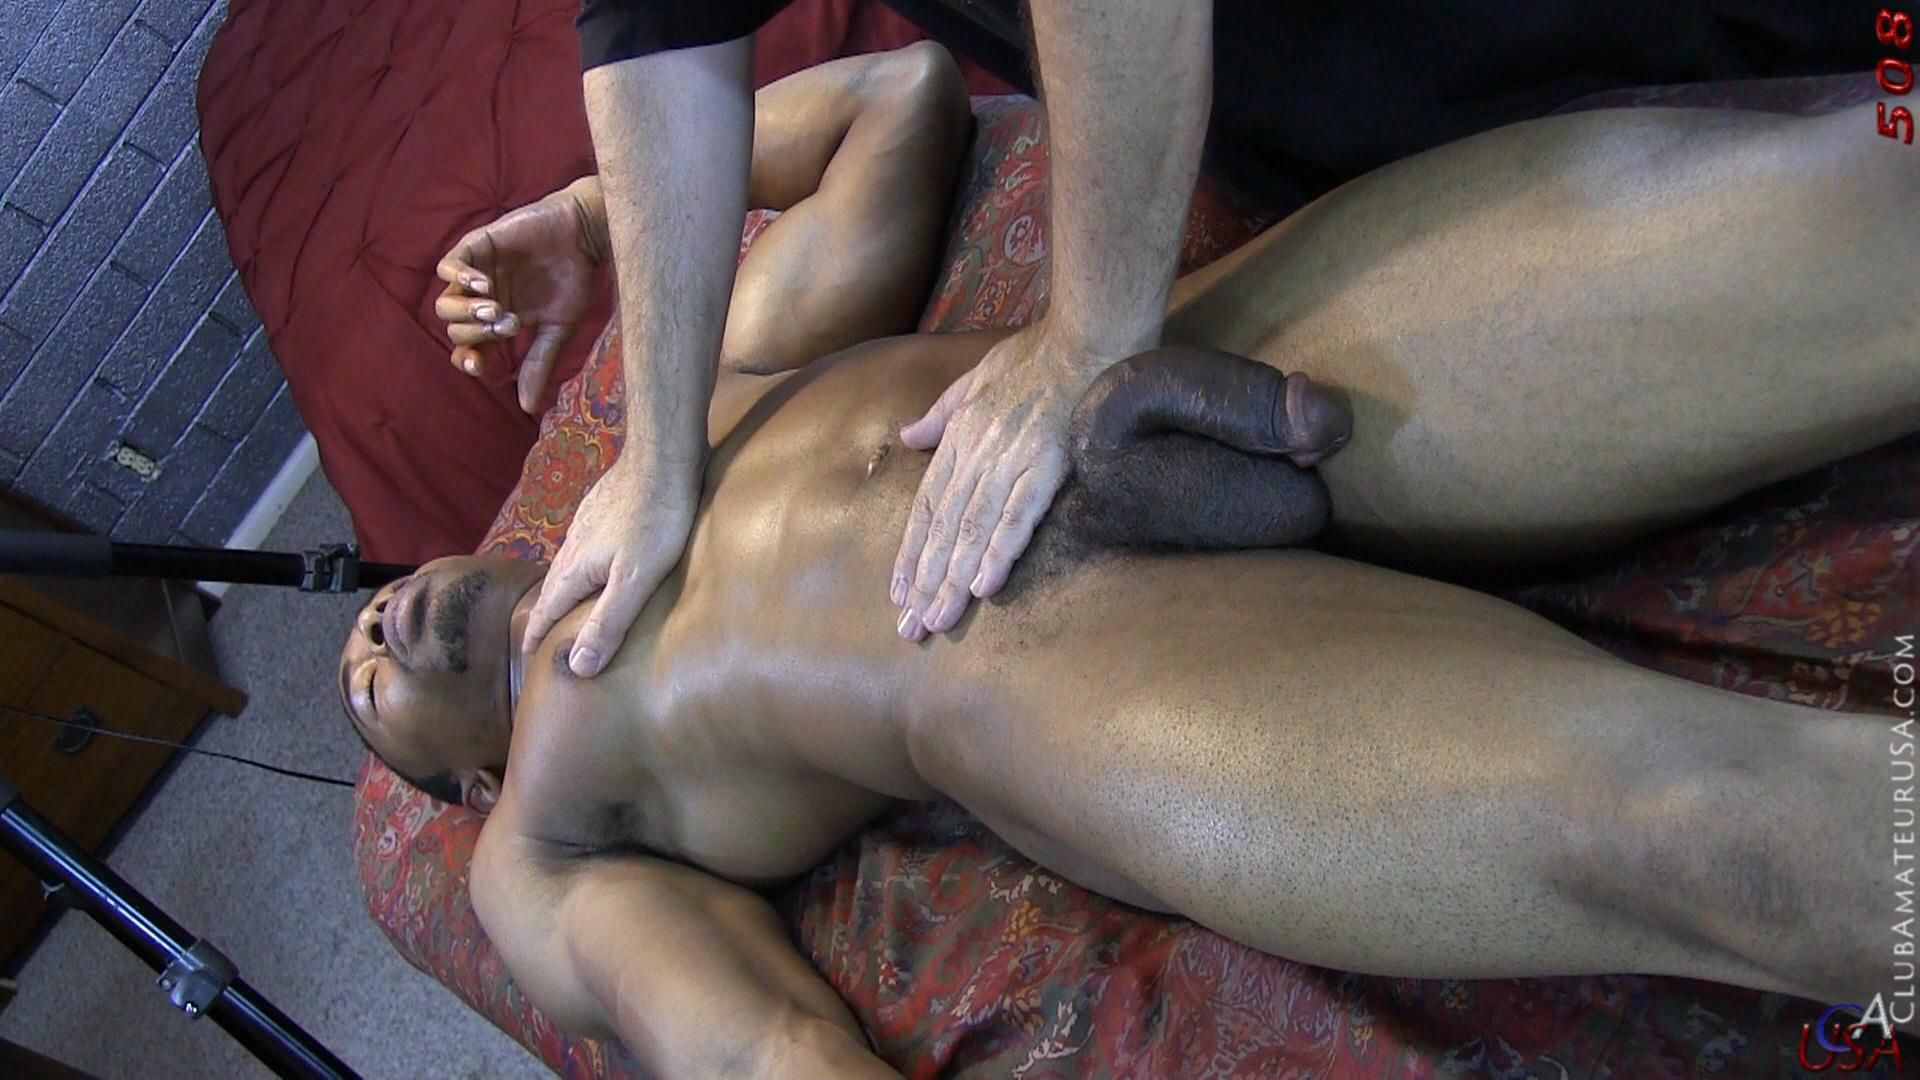 Club-Amateur-USA-Gracen-Straight-Big-Black-Cock-Getting-Sucked-With-Cum-Amateur-Gay-Porn-39 Straight Ghetto Thug Gets A Massage With A Happy Ending From A Guy